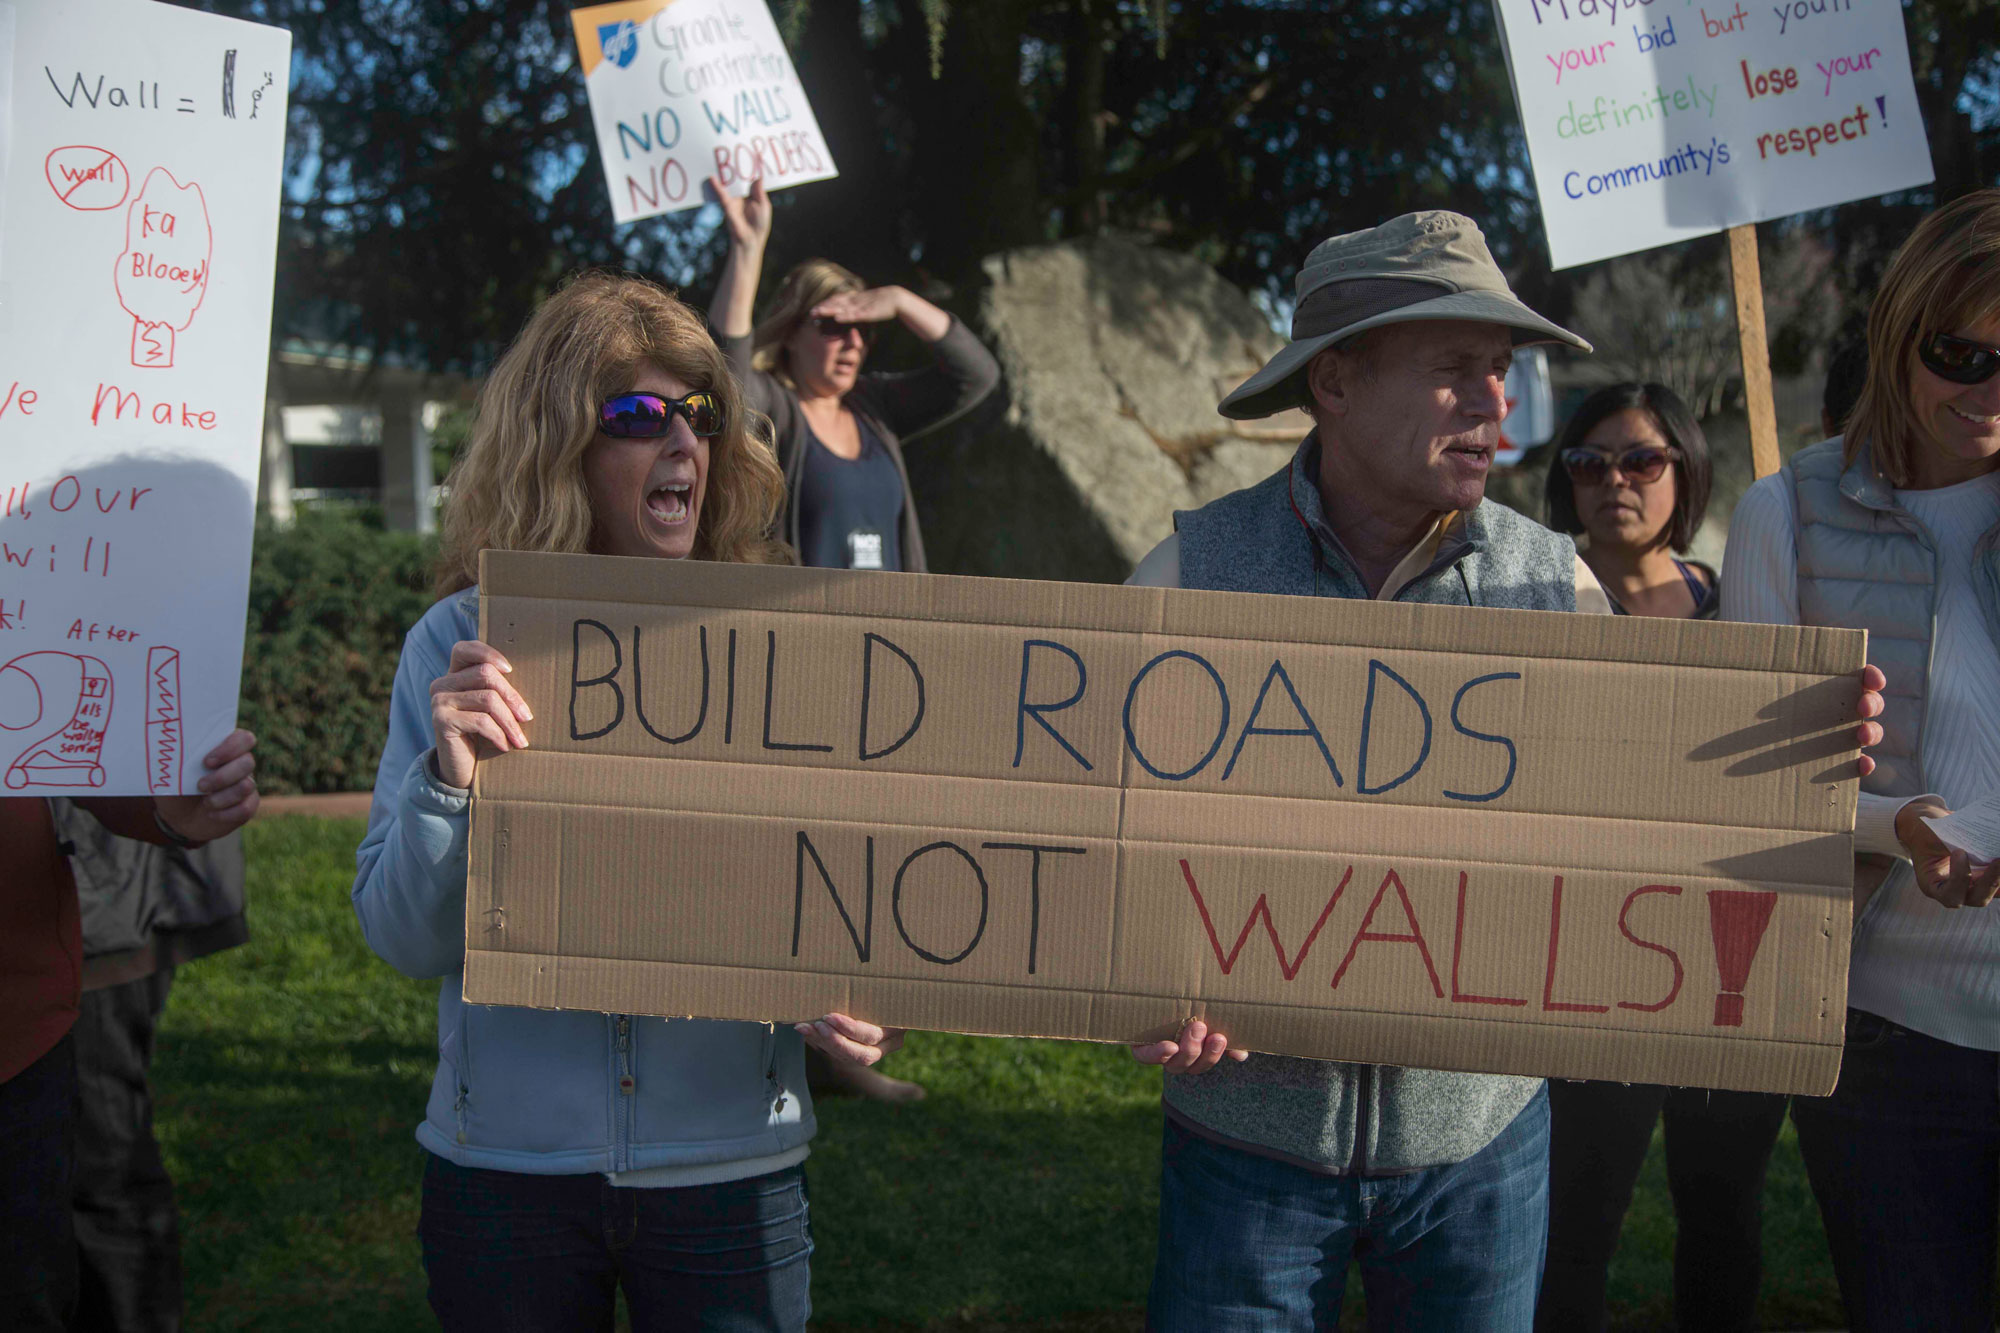 Watsonville Protests Company's Bid for Wall